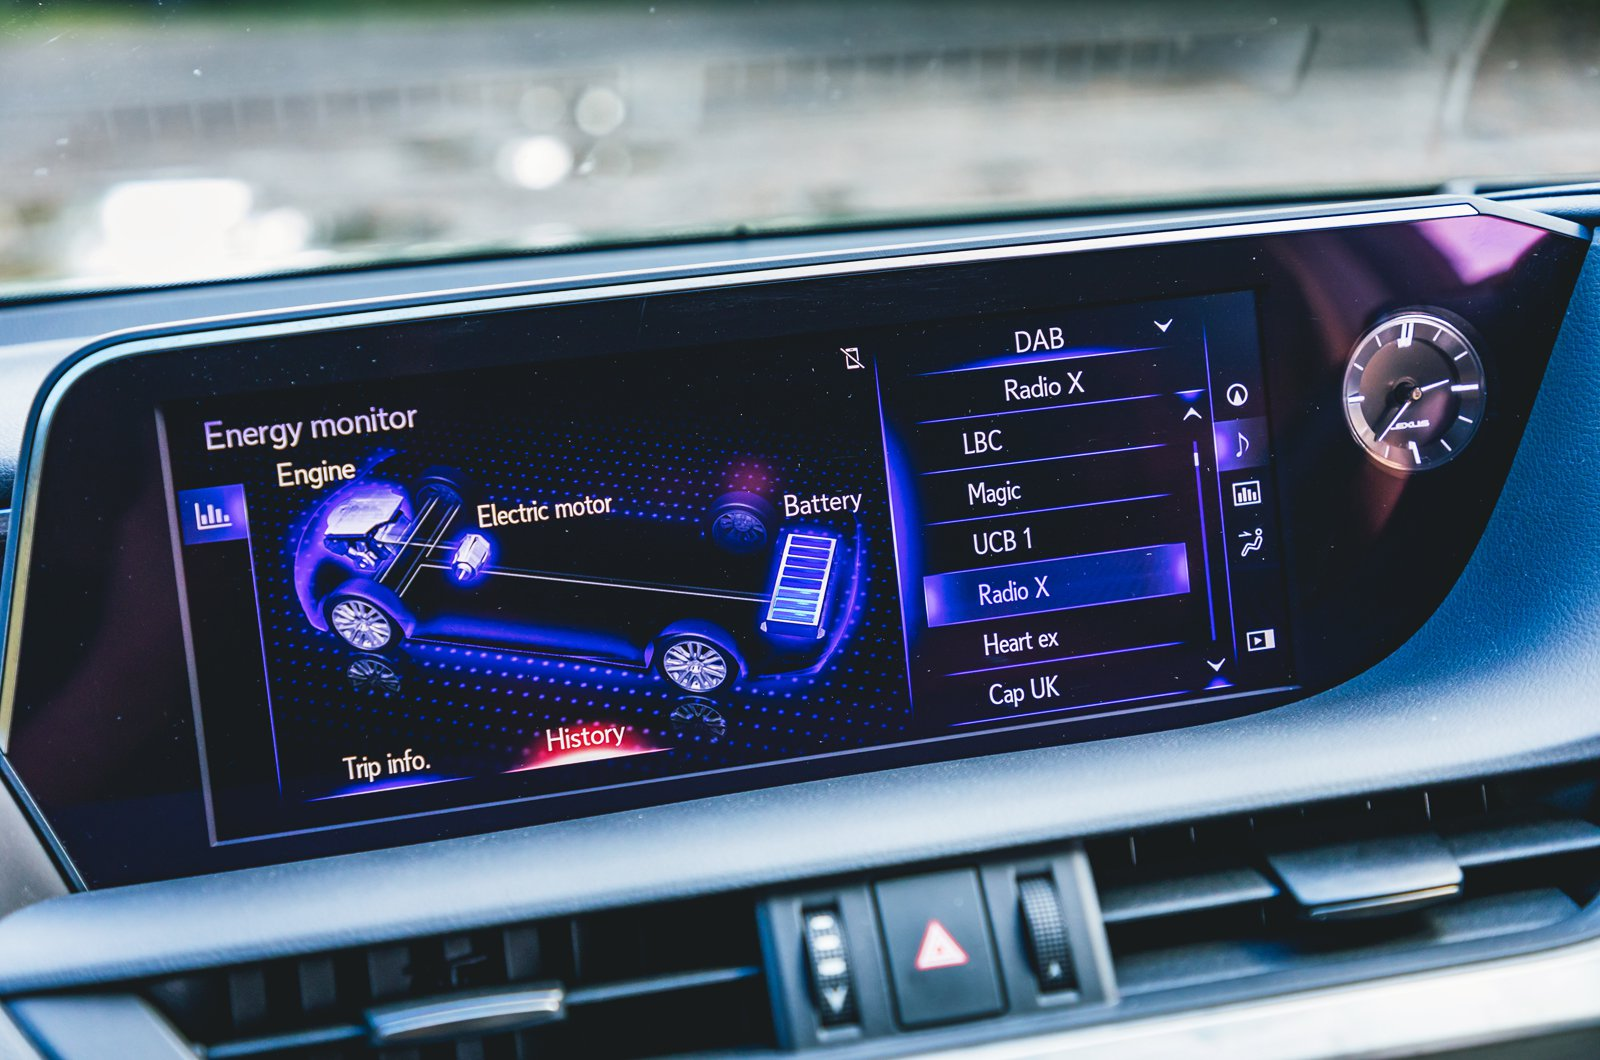 Lexus ES infotainment screen - 68 plate